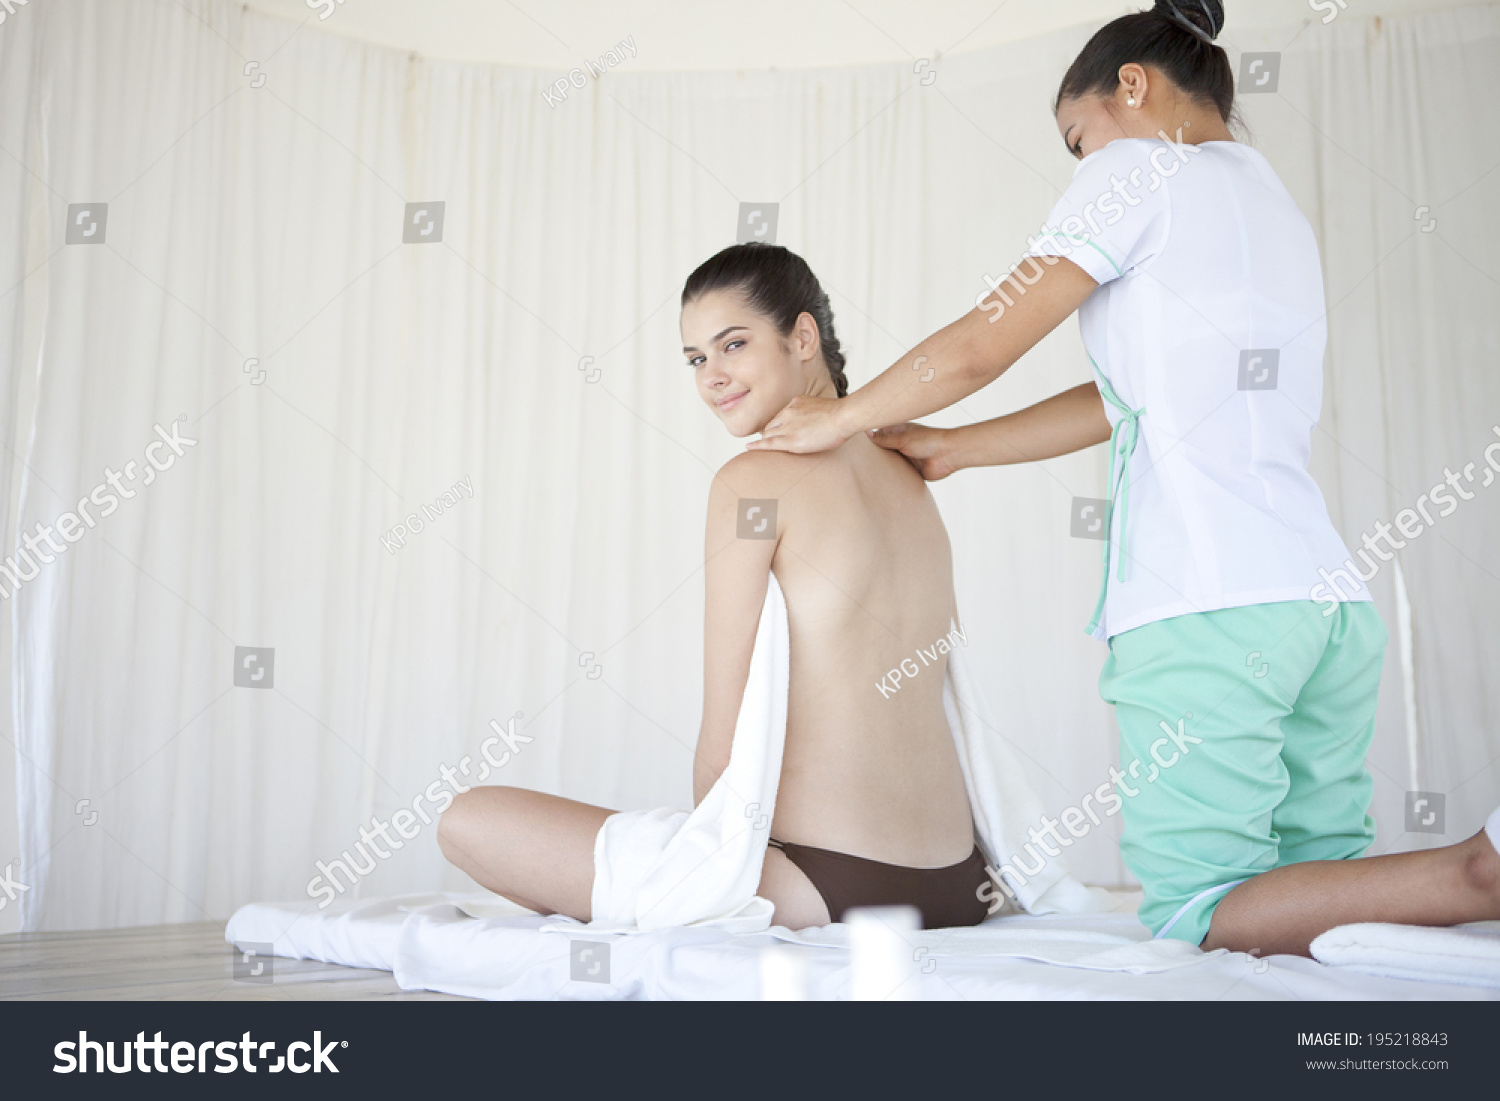 The Image Of An Asian Woman Getting A Massage Stock Photo 195218843  Shutterstock-1722